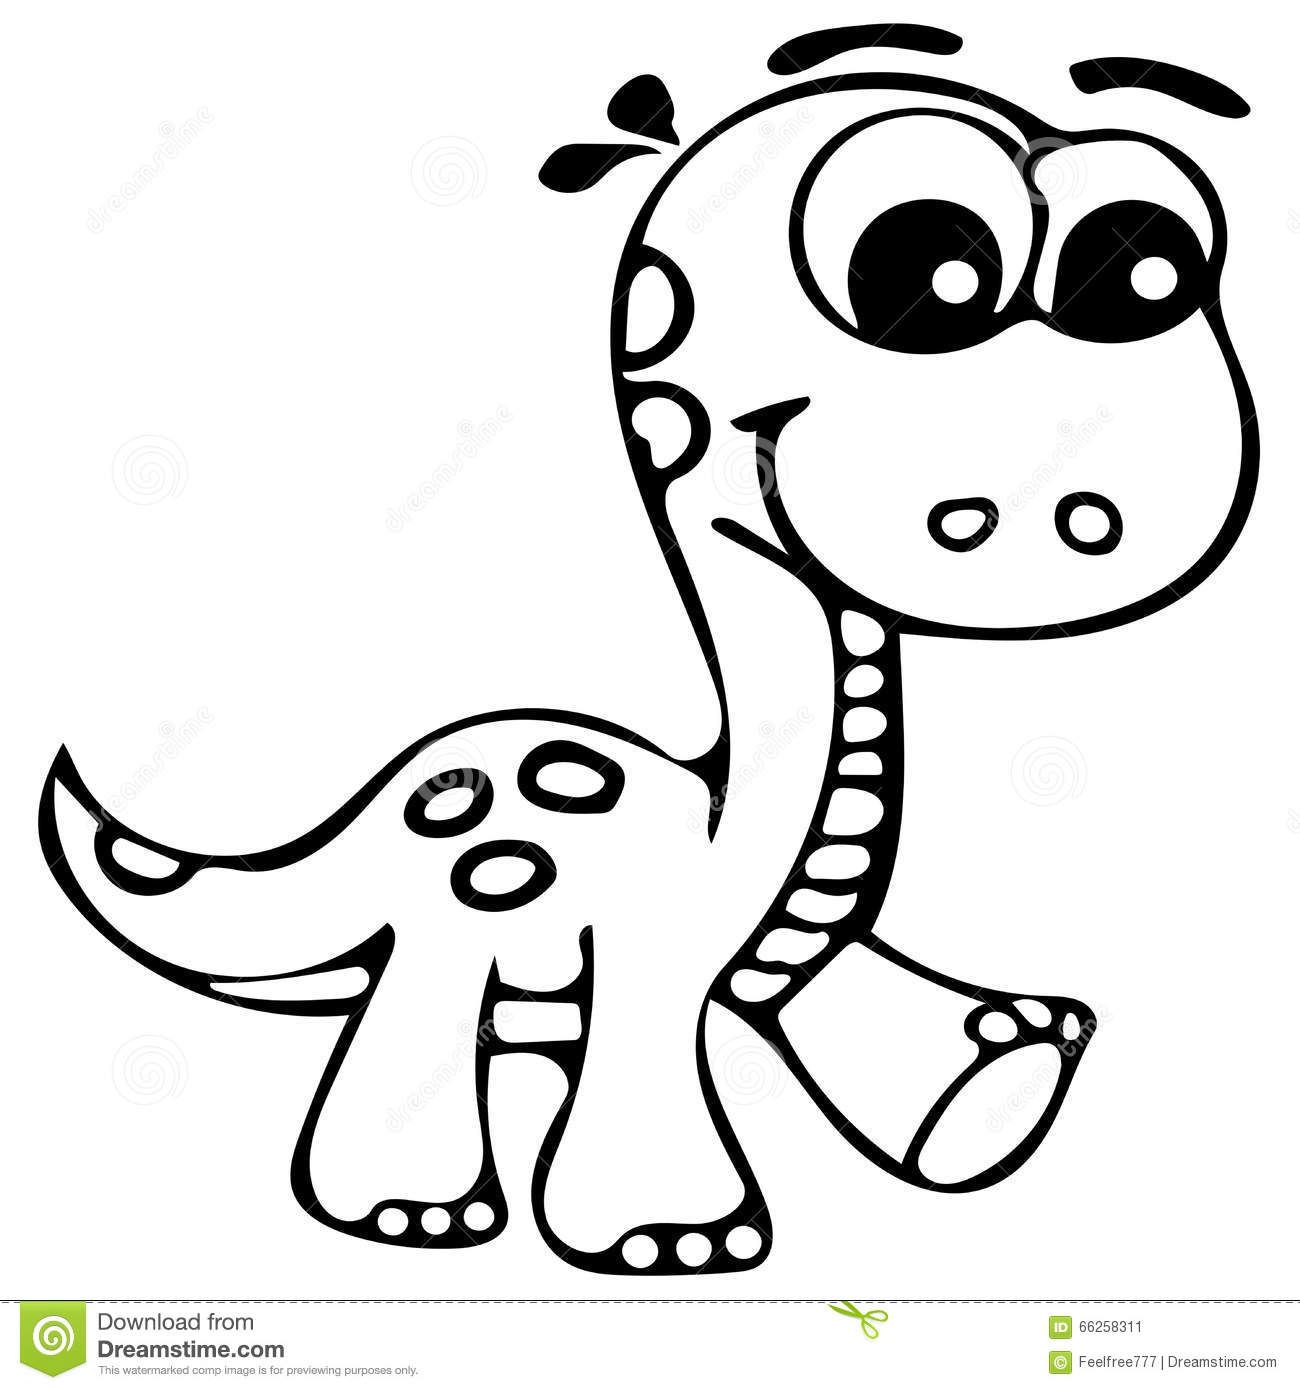 coloring pages dinosaurs baby dinosaur coloring pages for preschoolers activity pages dinosaurs coloring